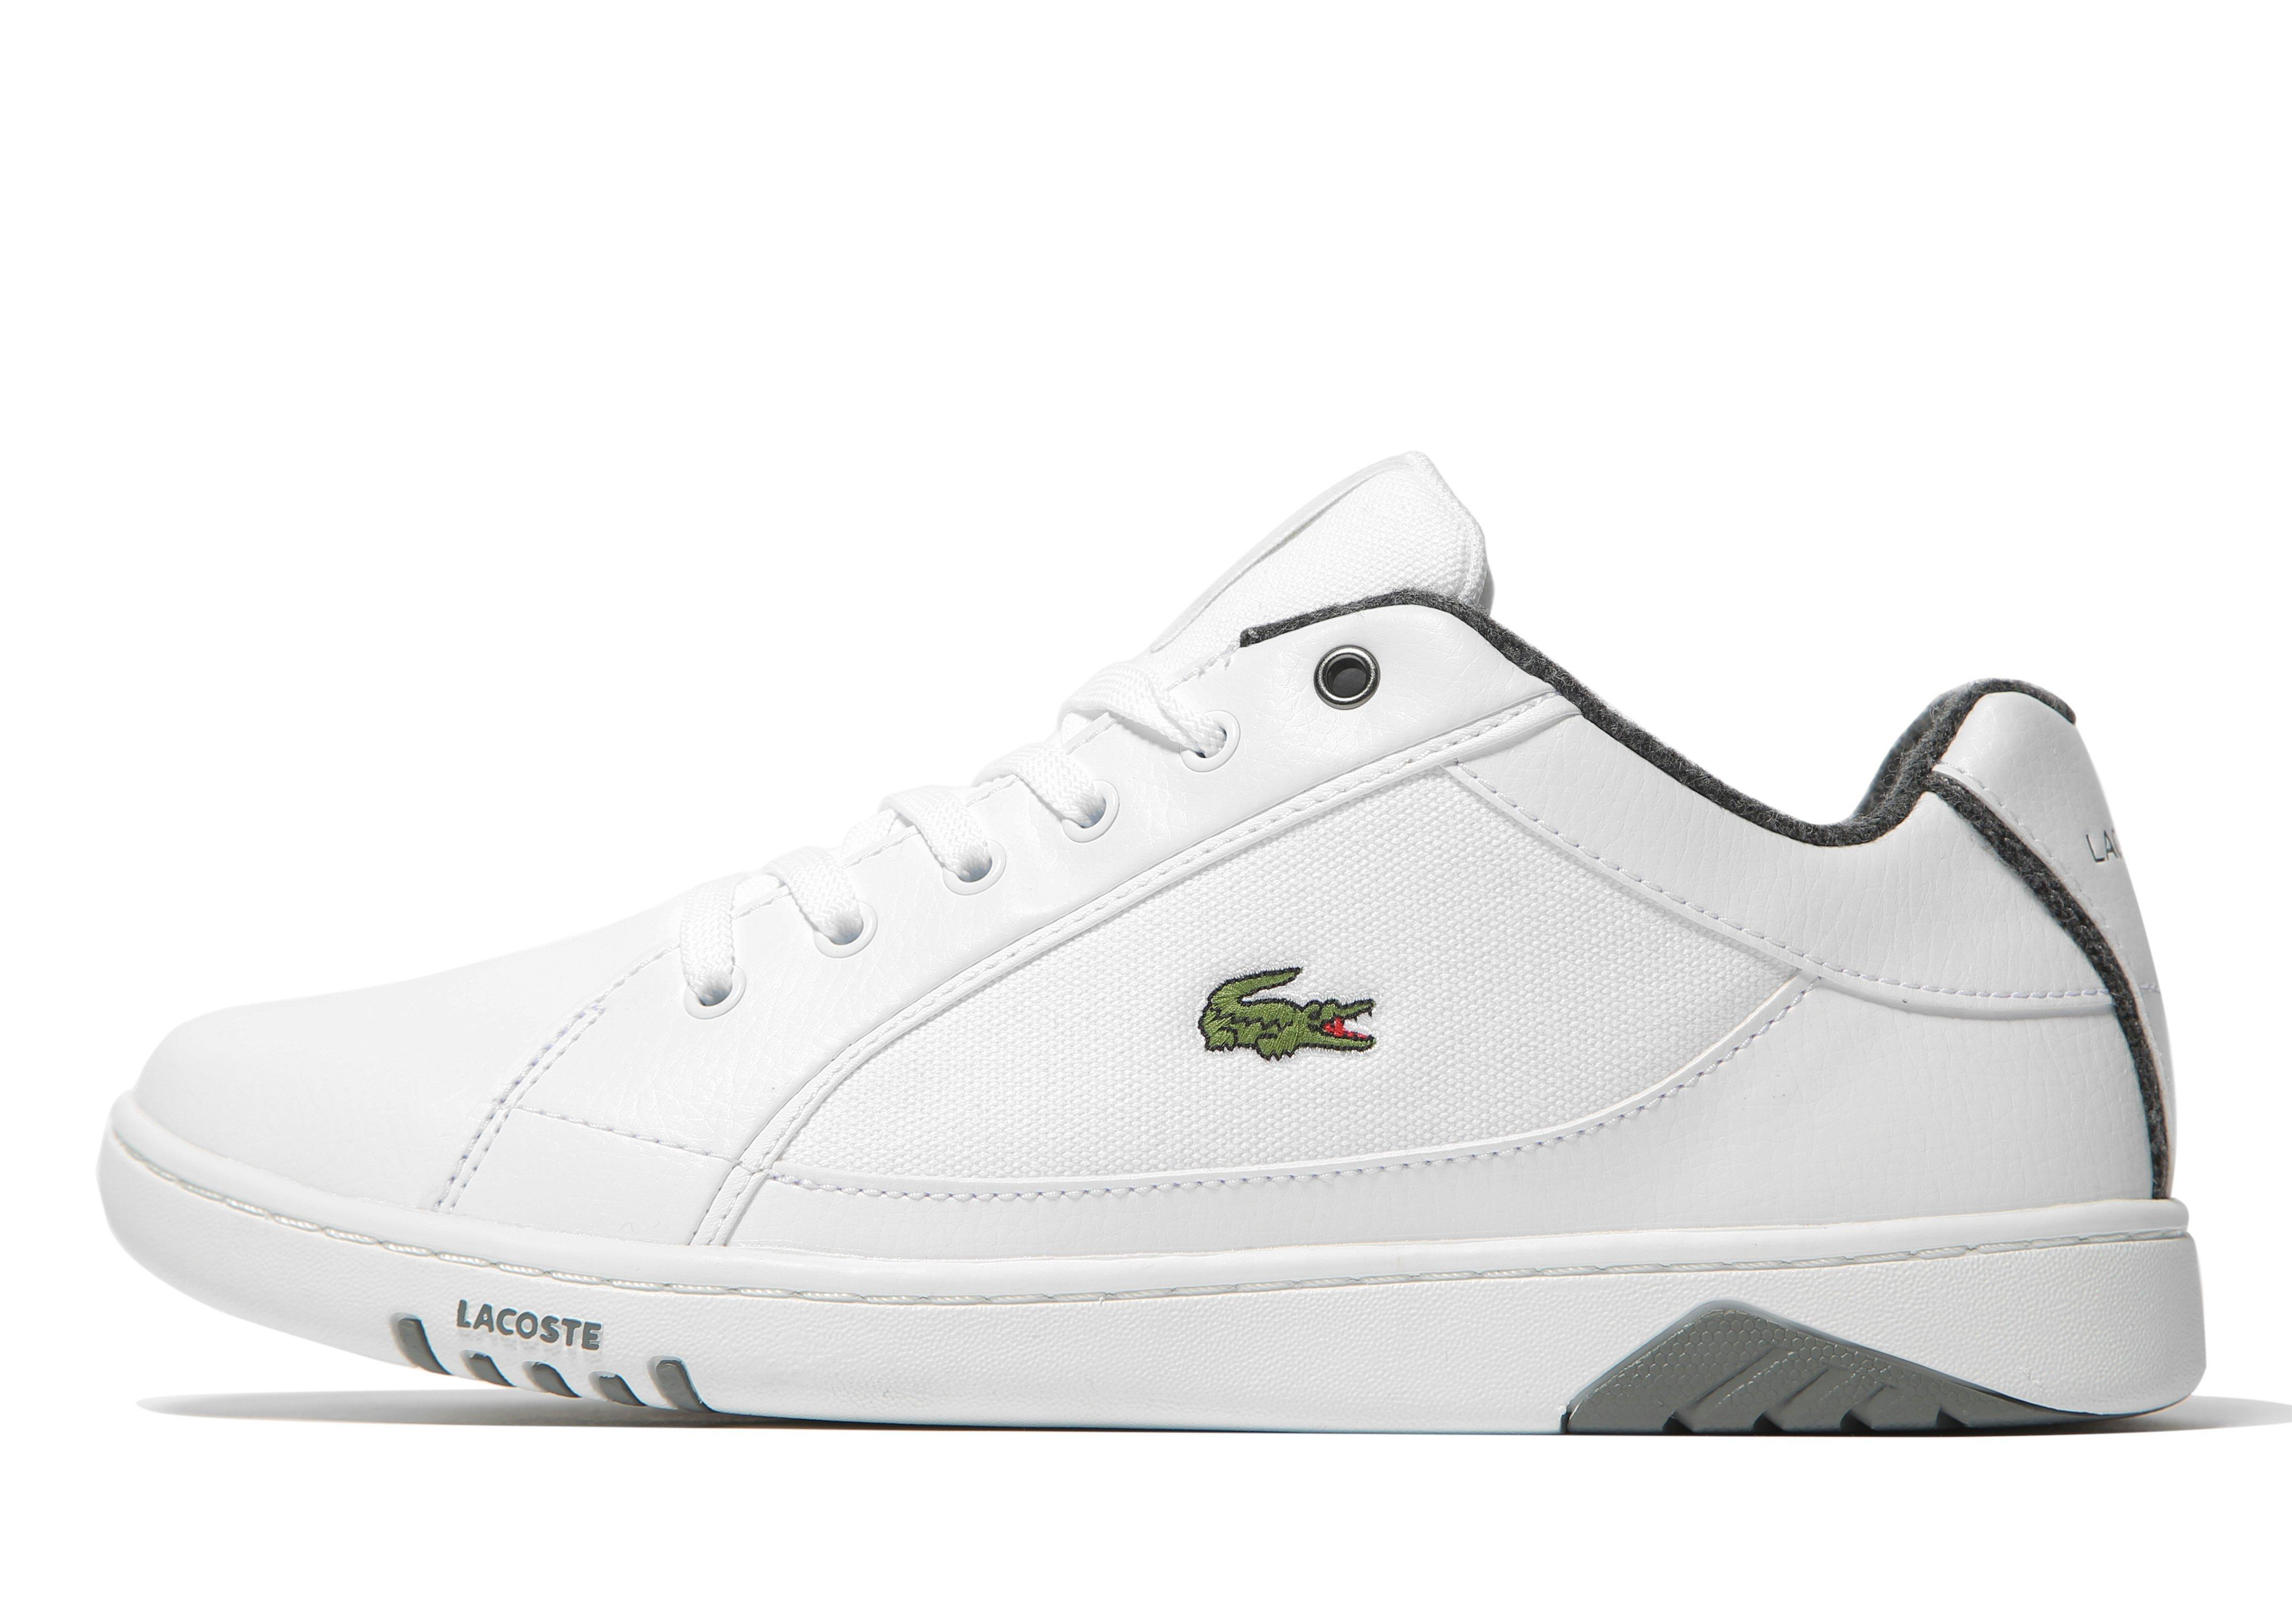 Lacoste Synthetic Deviation Ii in White